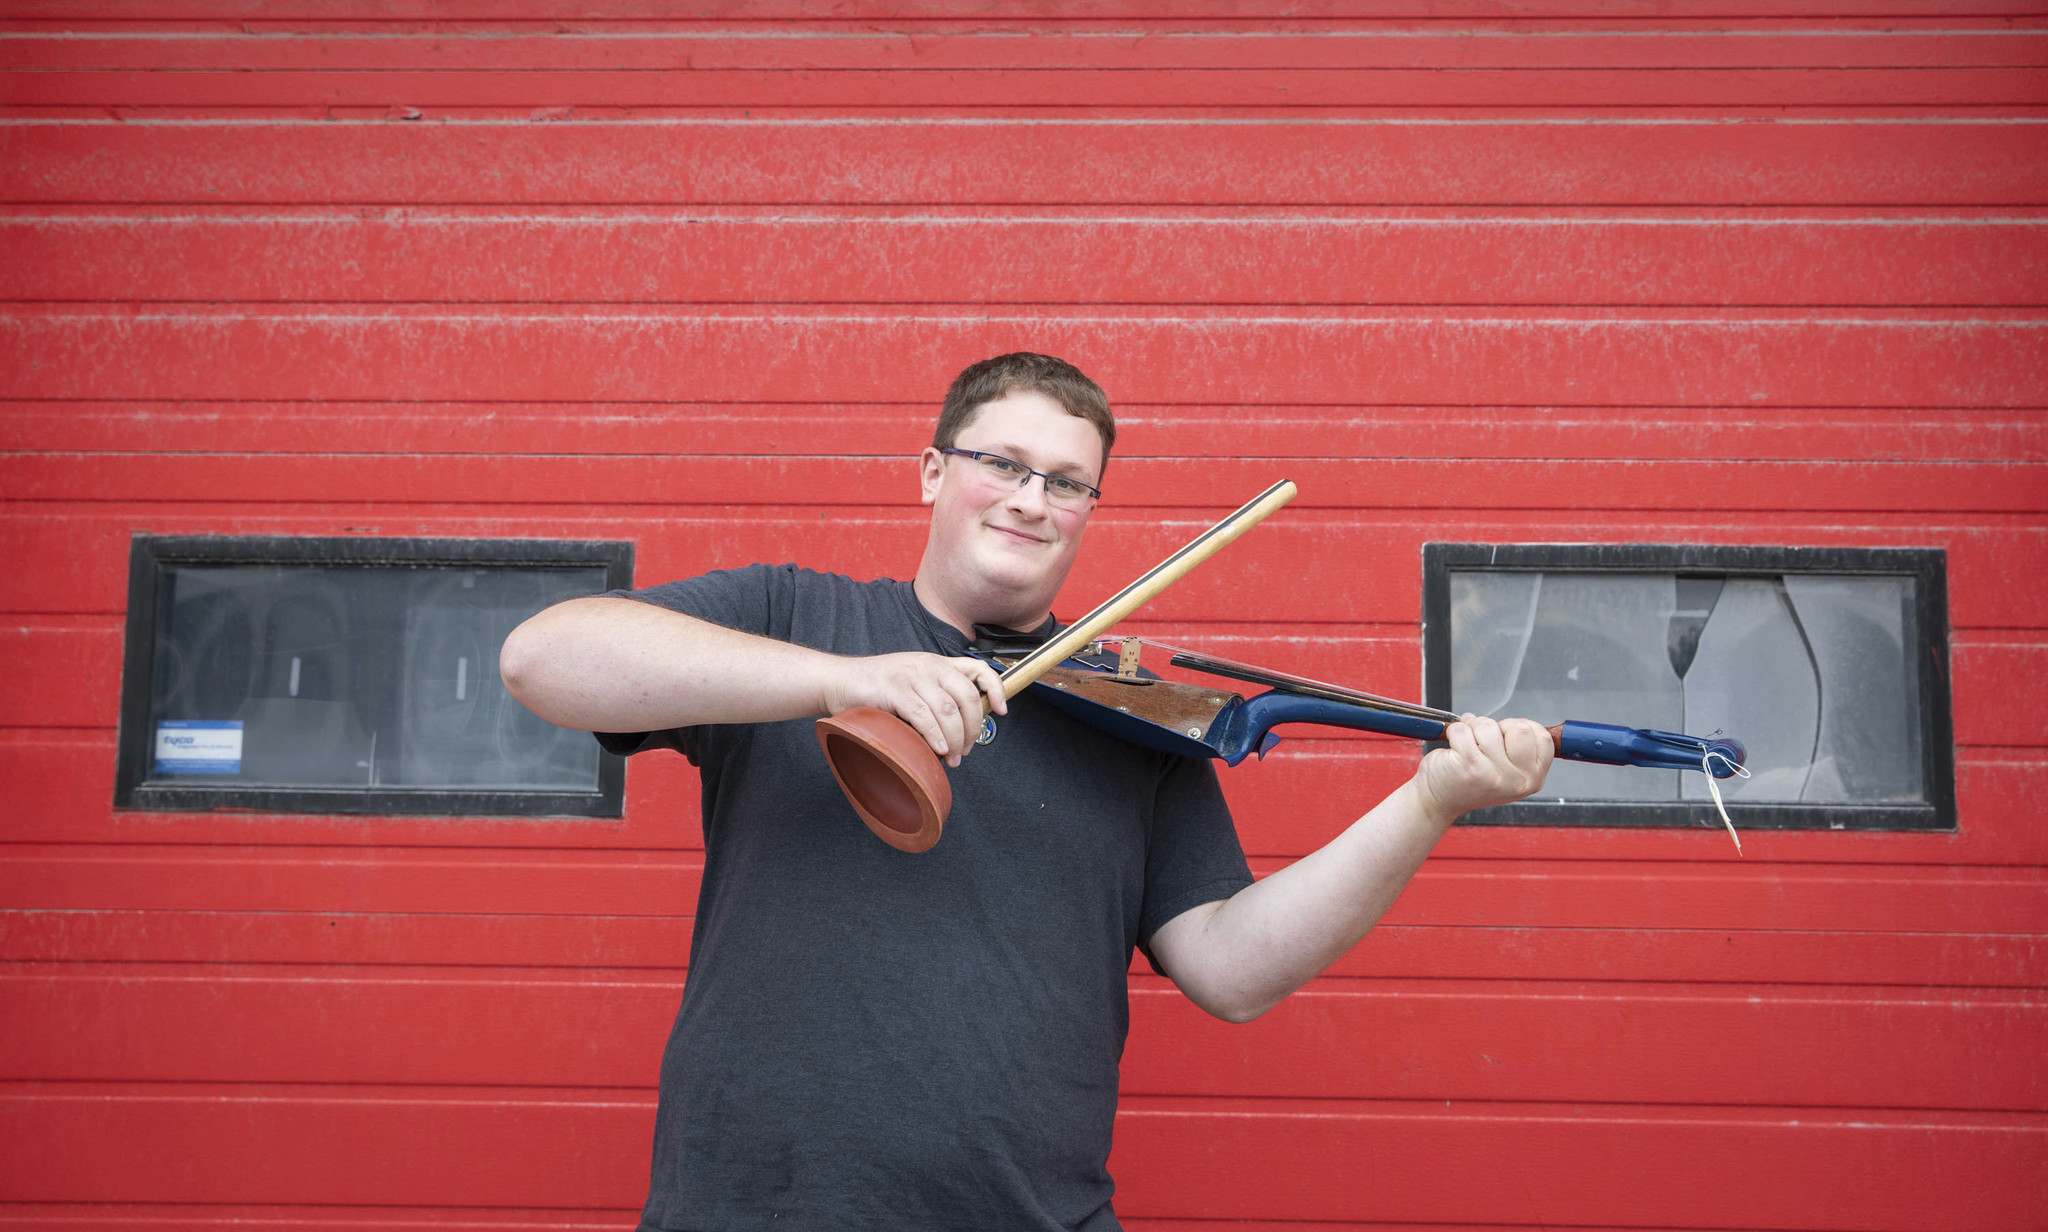 Jared Warkentin, assistant at St. Vital Museum, with a bow and fiddle made from a toilet plunger and shovel. (Jessica Lee / Winnipeg Free Press)</p>